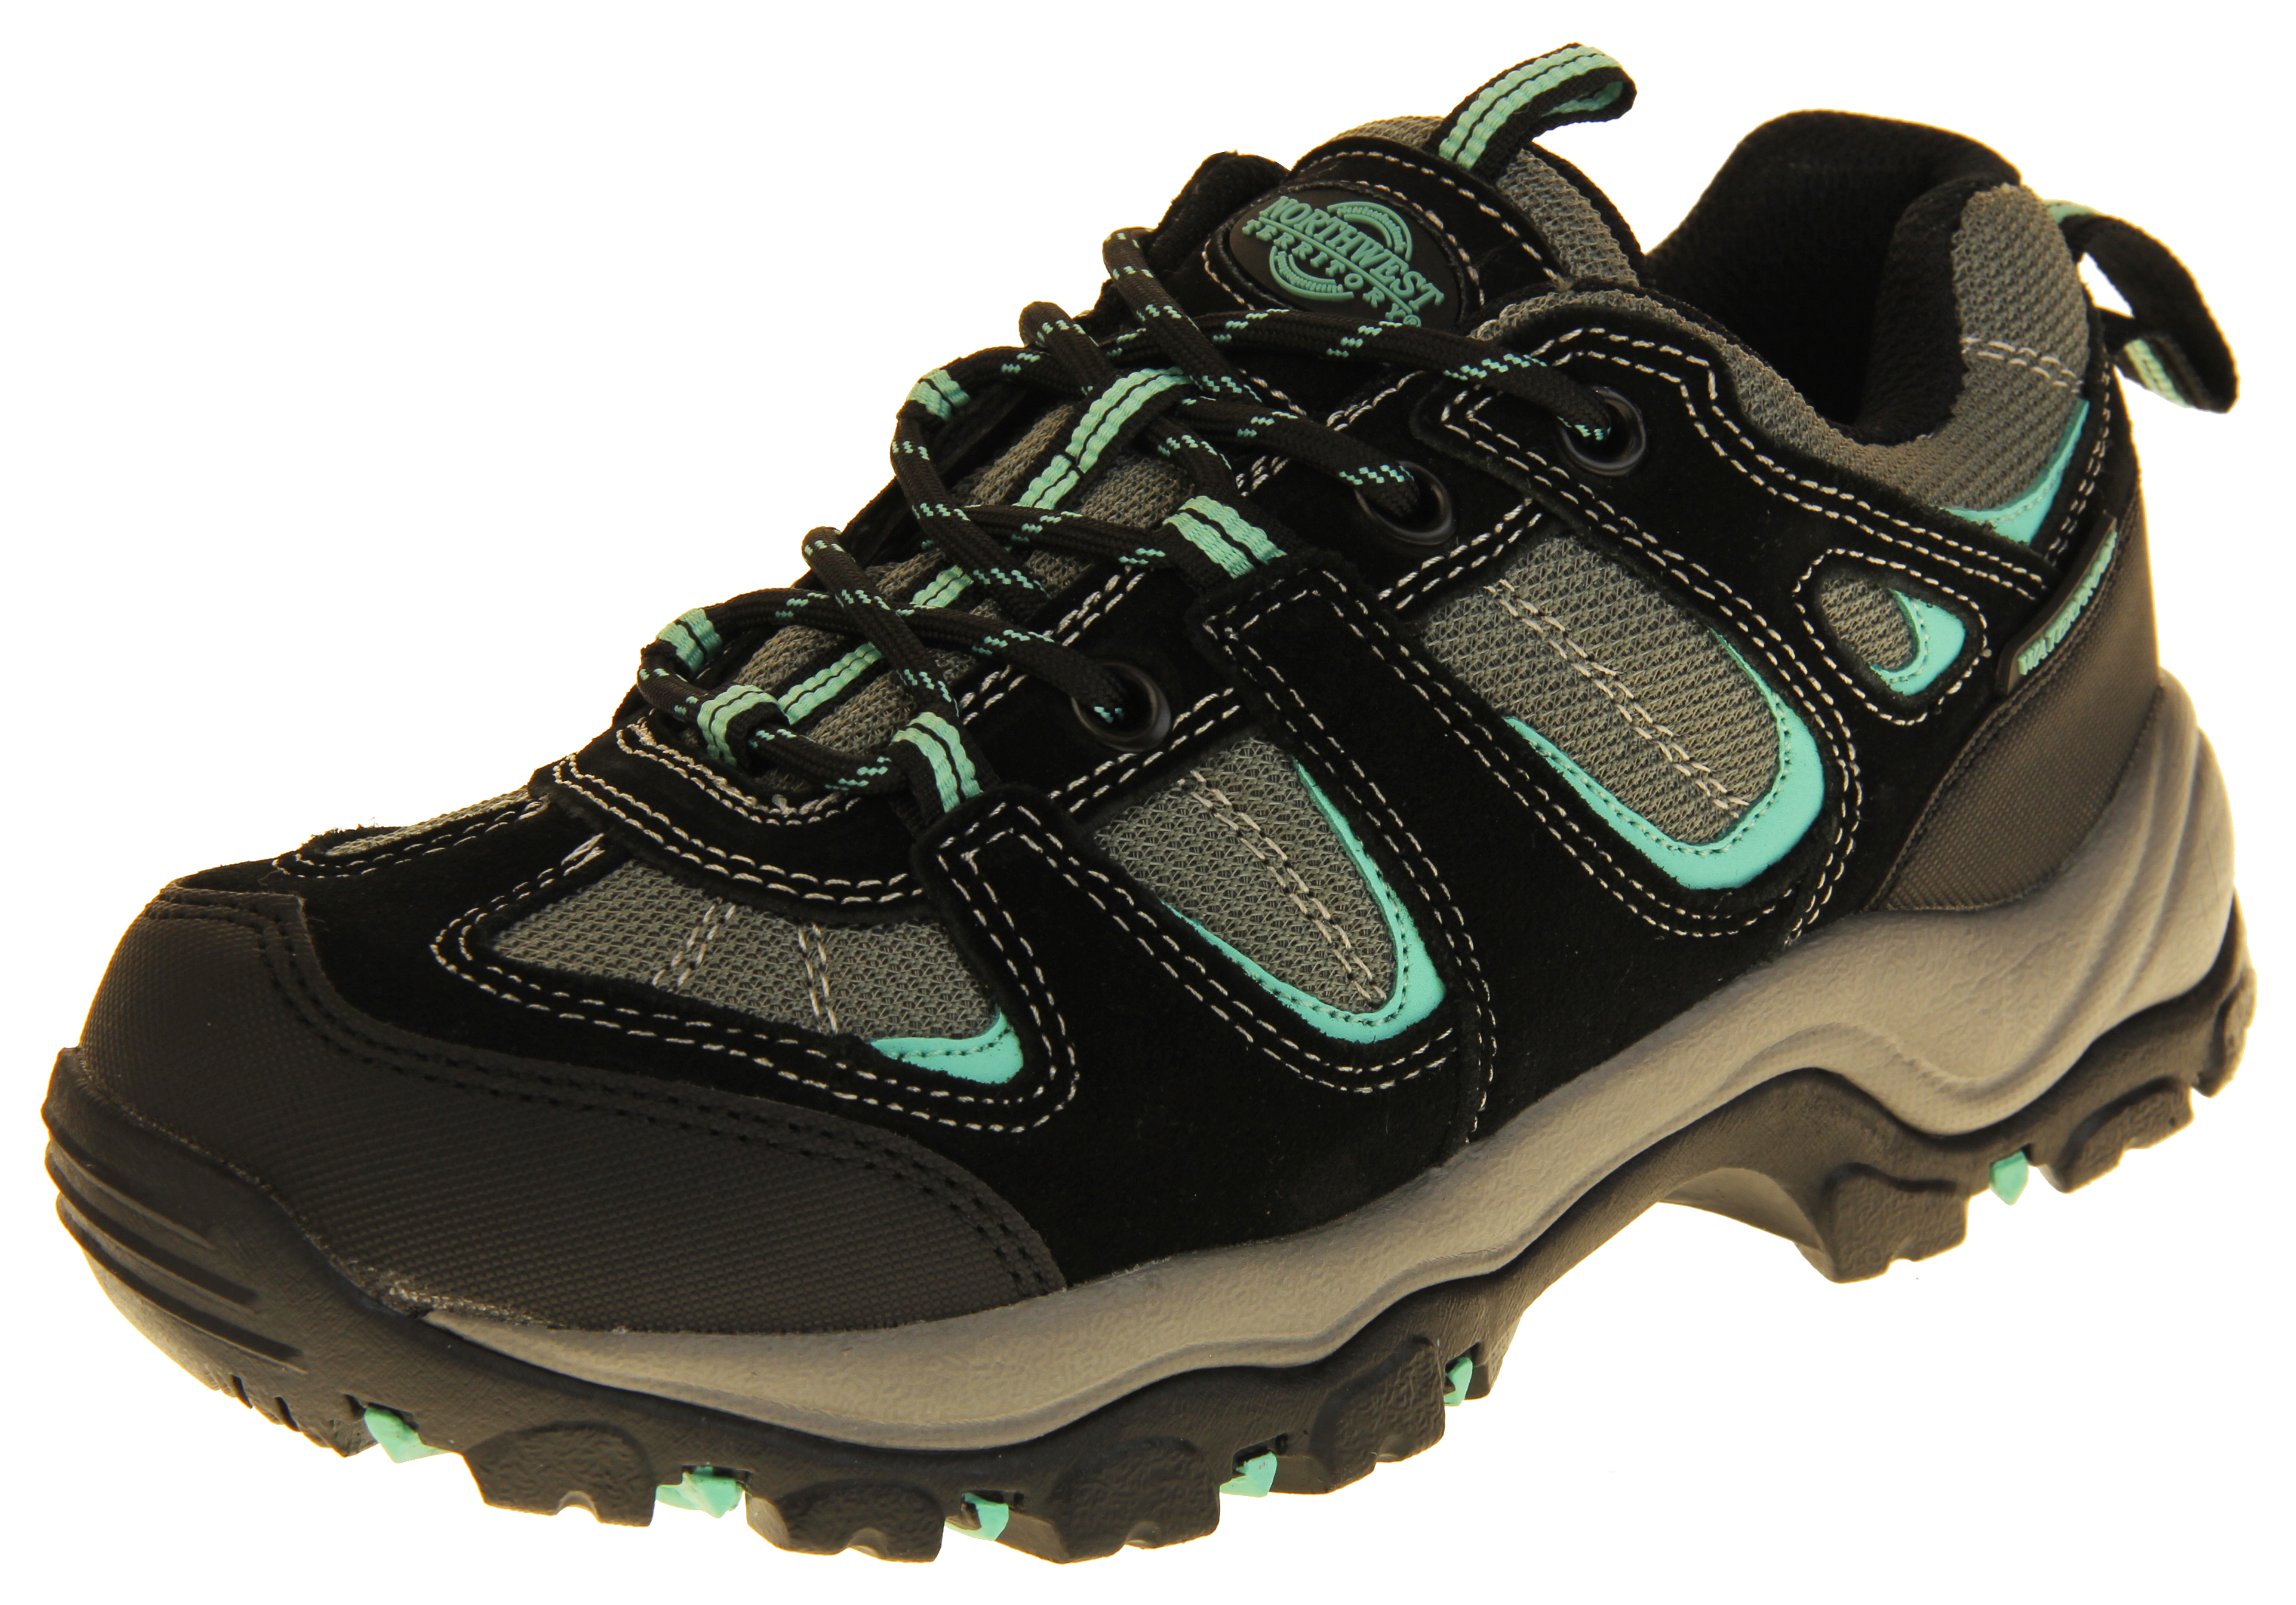 0a800e8d5bf Ladies Northwest Territory Leather Waterproof Hiking Shoes